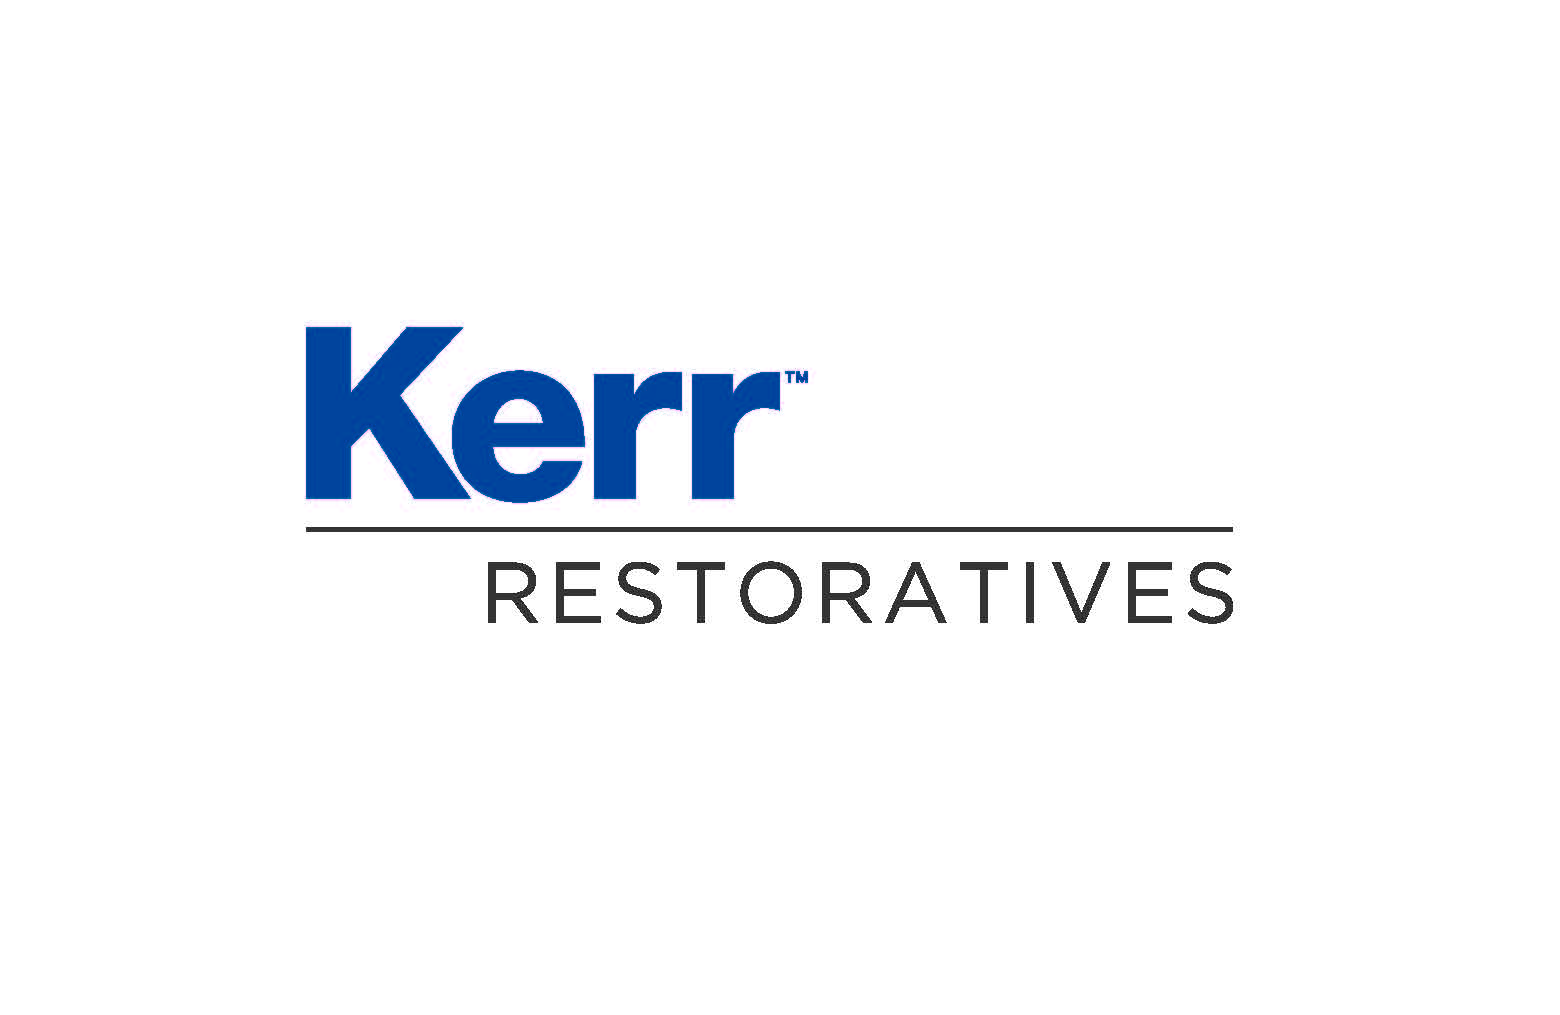 Kerr_Restoratives_Logo_Blue_PMS541